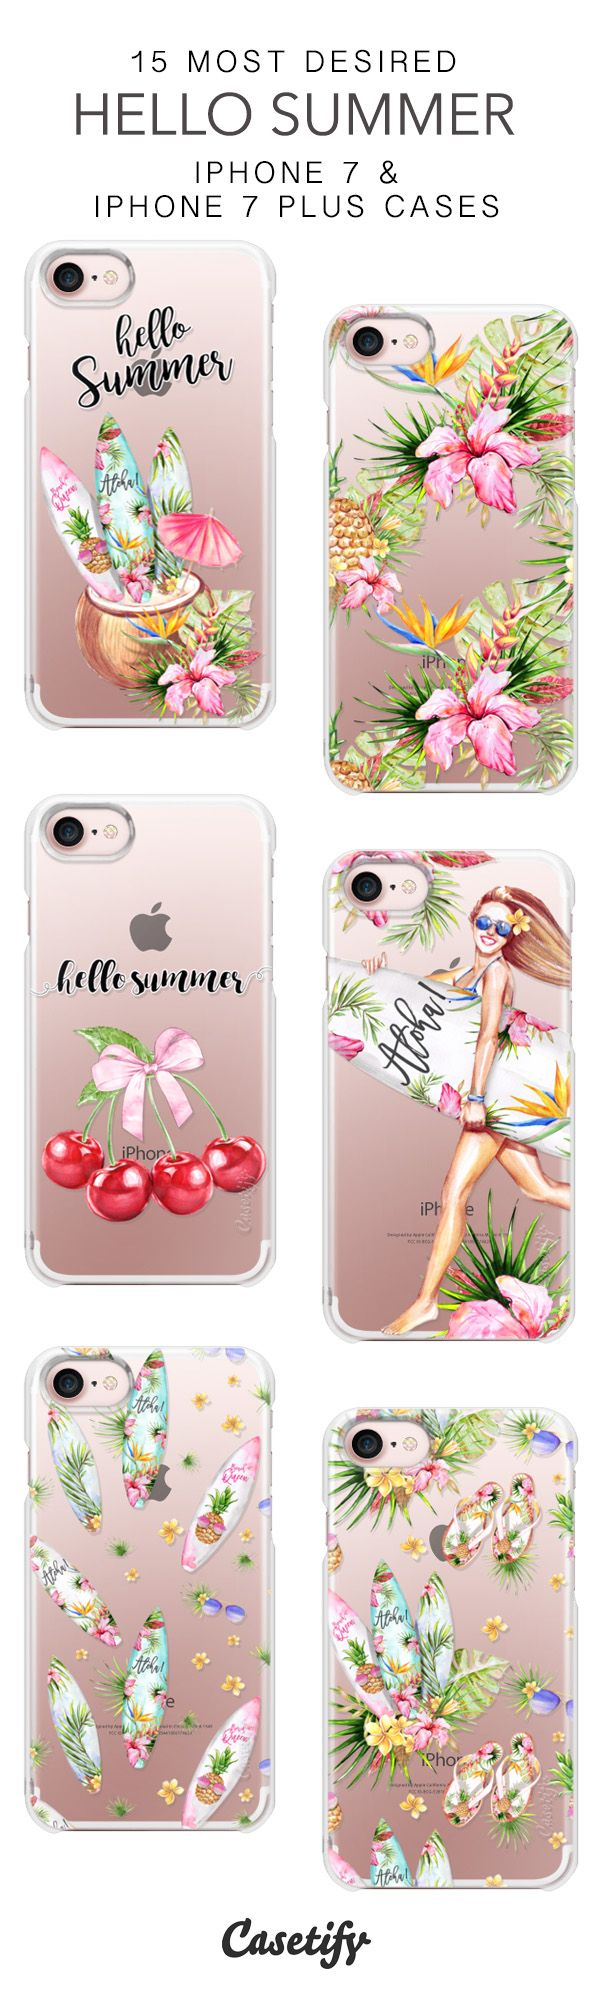 15 Most Desired Hello Summer Protective iPhone 7 Cases and iPhone 7 Plus Cases. More Summer iPhone case here > https://www.casetify.com/collections/top_100_designs#/?vc=Vq12lzZF1T